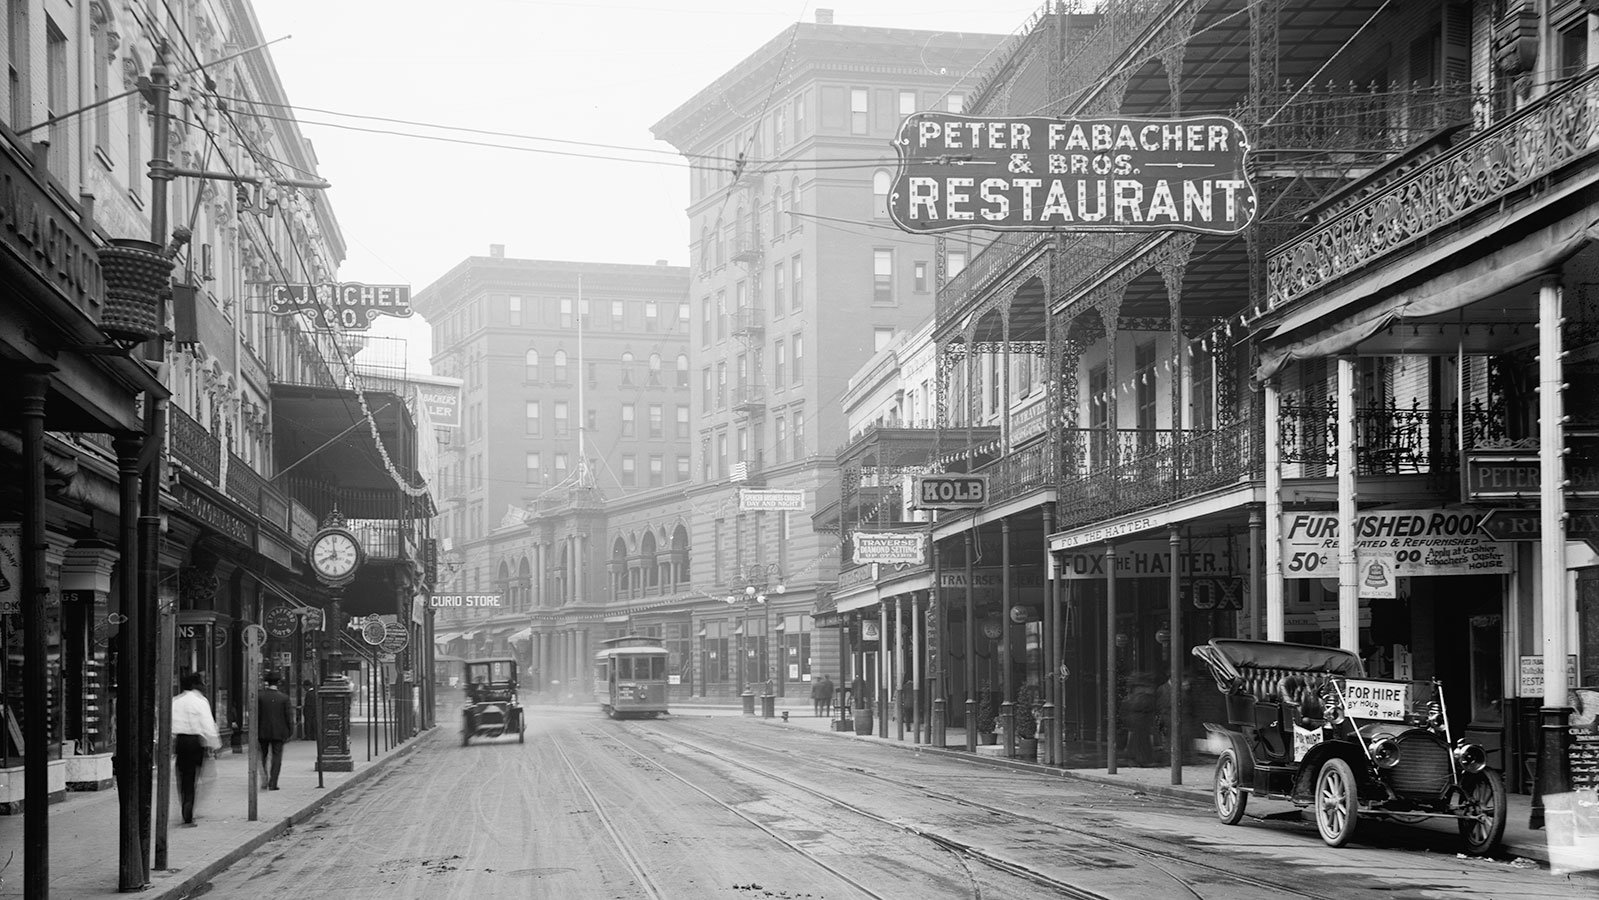 St. Charles Street in New Orleans, Louisiana, circa 1910